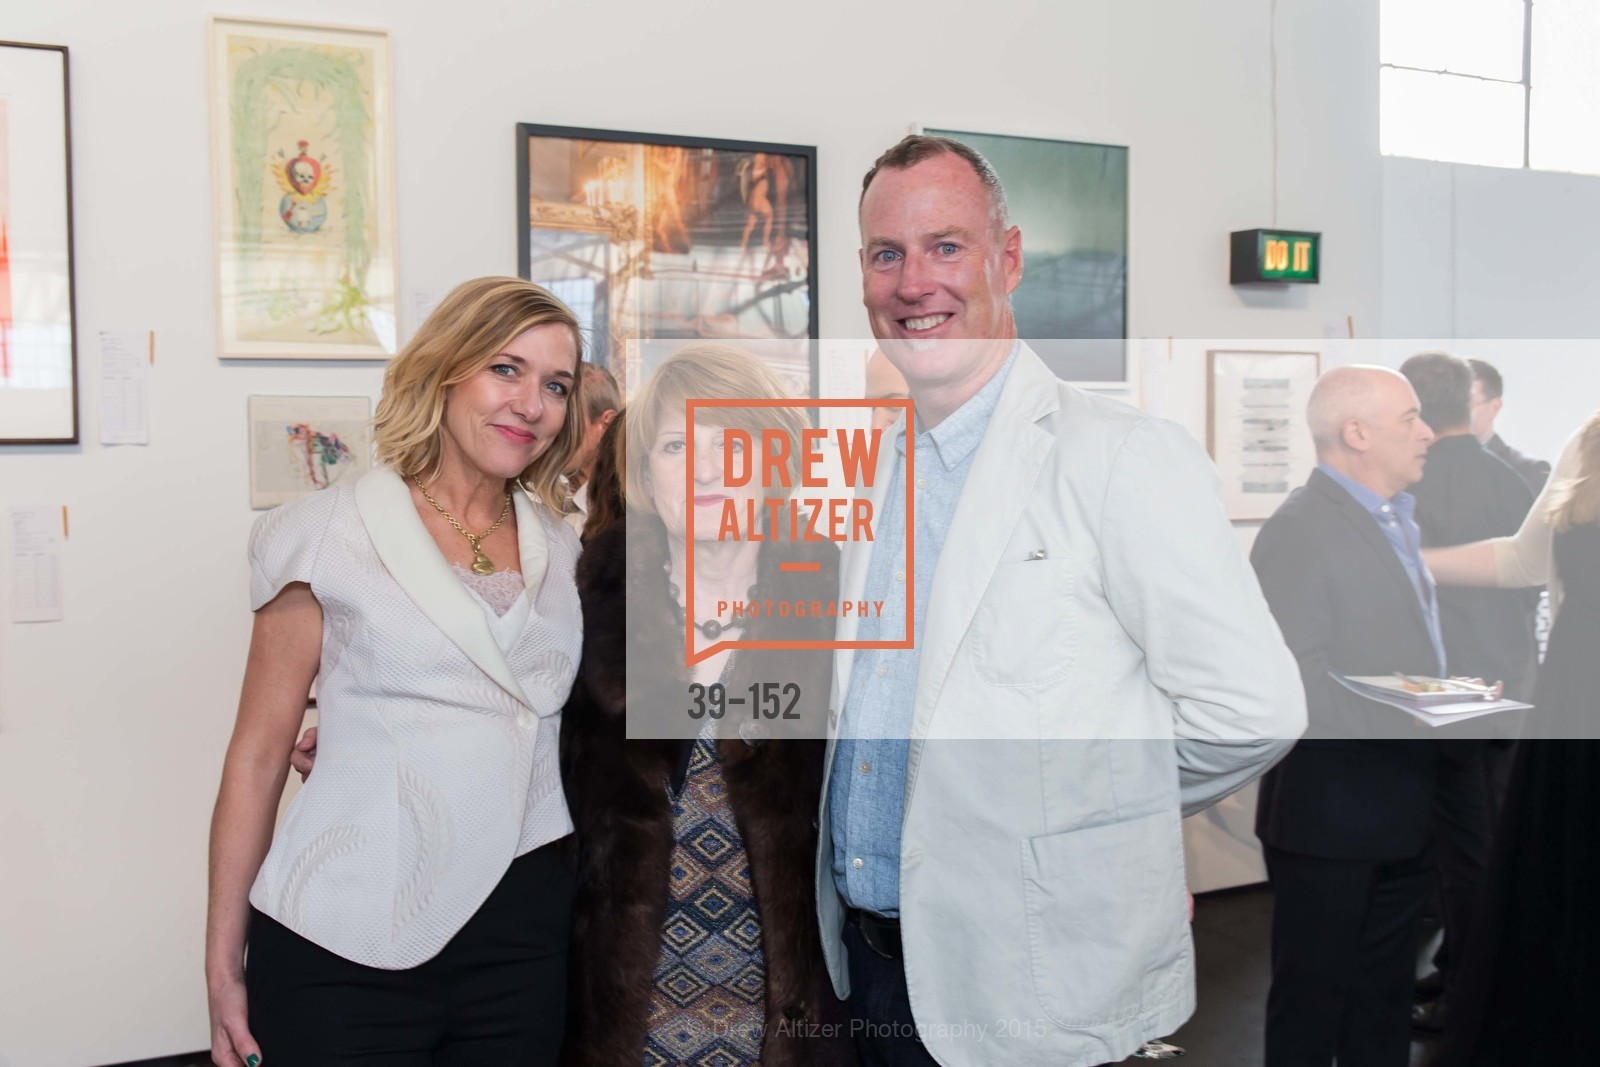 Lara Deam, Chris Ospital, Chris Deam, Headlands Center for the Arts Benefit Auction, Fort Mason Festival, Pavilon, June 2nd, 2015,Drew Altizer, Drew Altizer Photography, full-service agency, private events, San Francisco photographer, photographer california